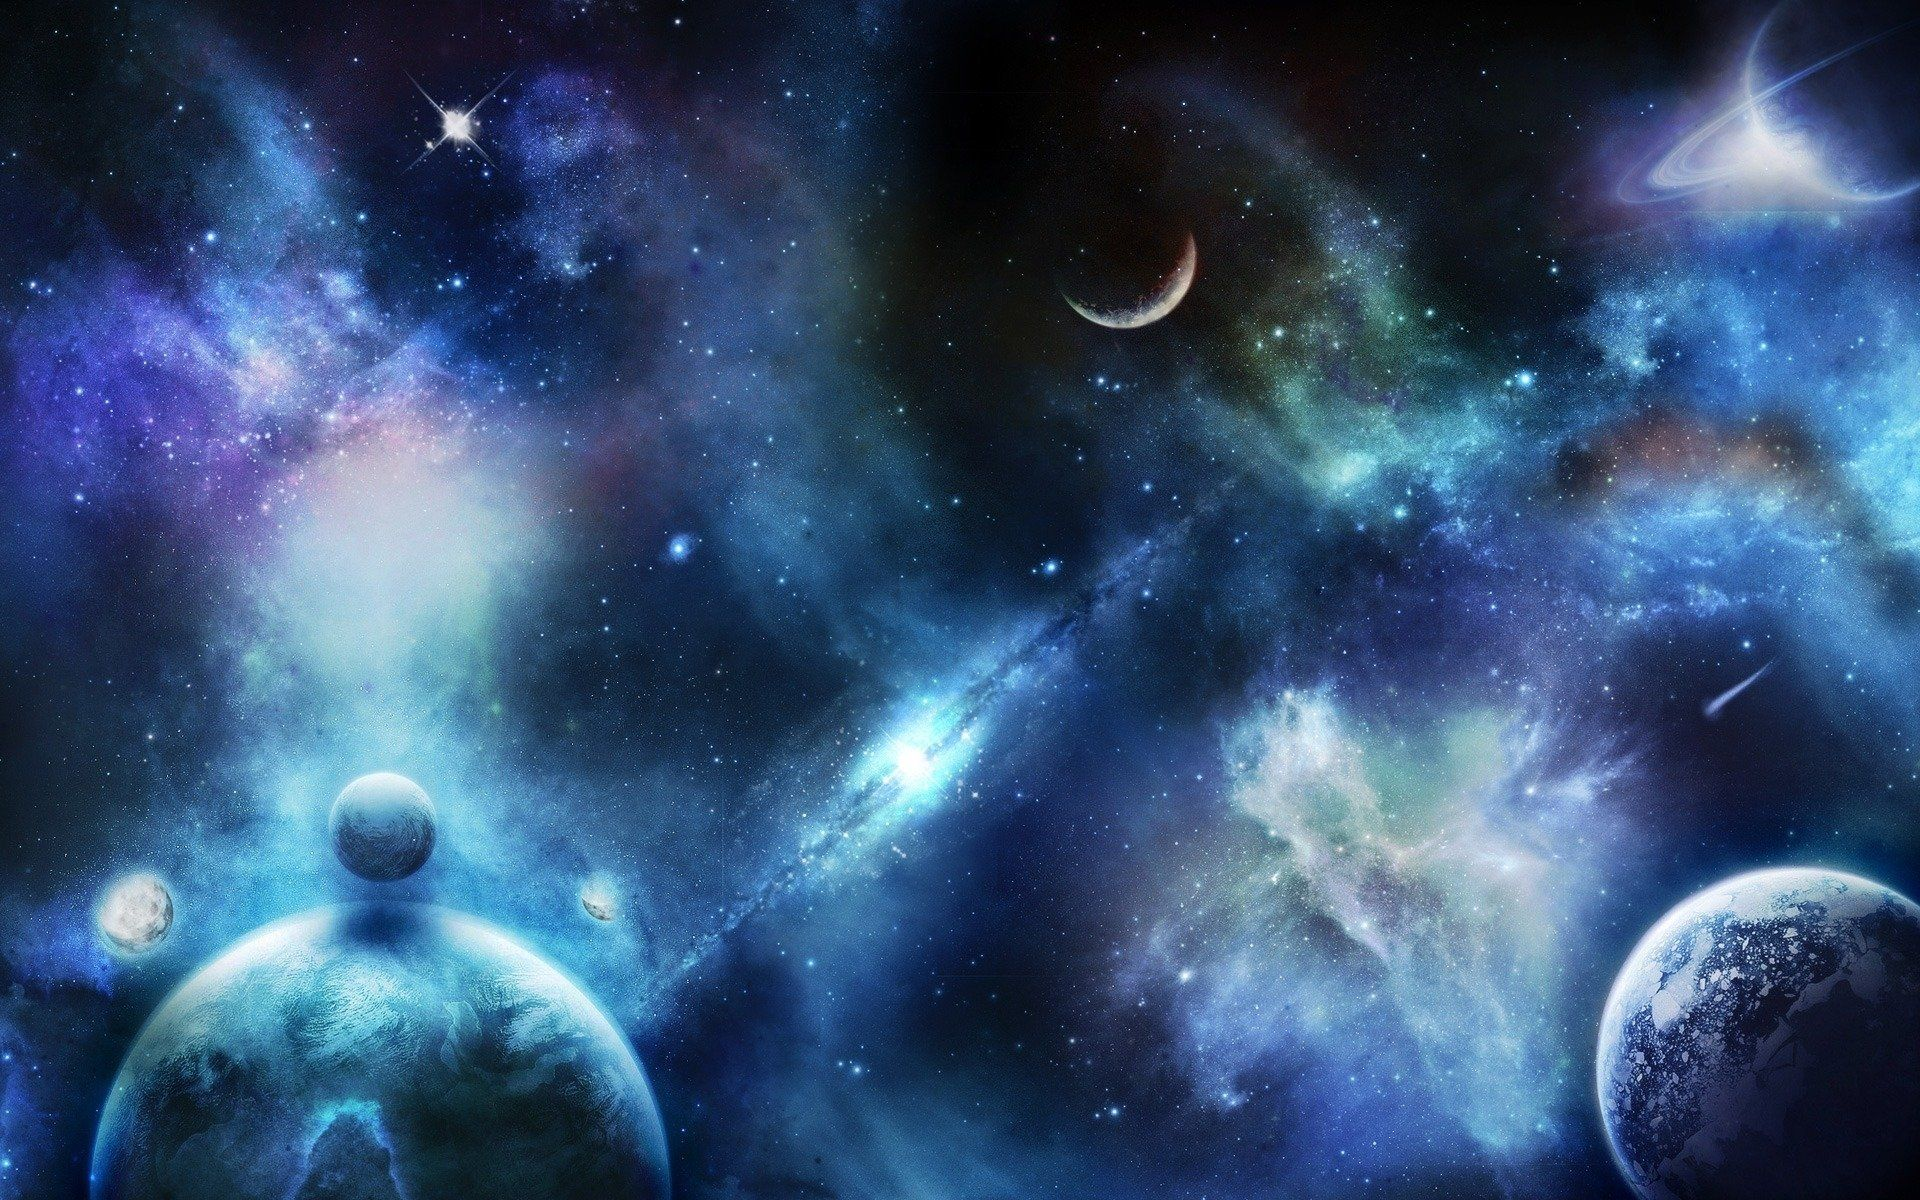 1920x1200 884 Planets HD Wallpapers   Background Images - Wallpaper Abyss